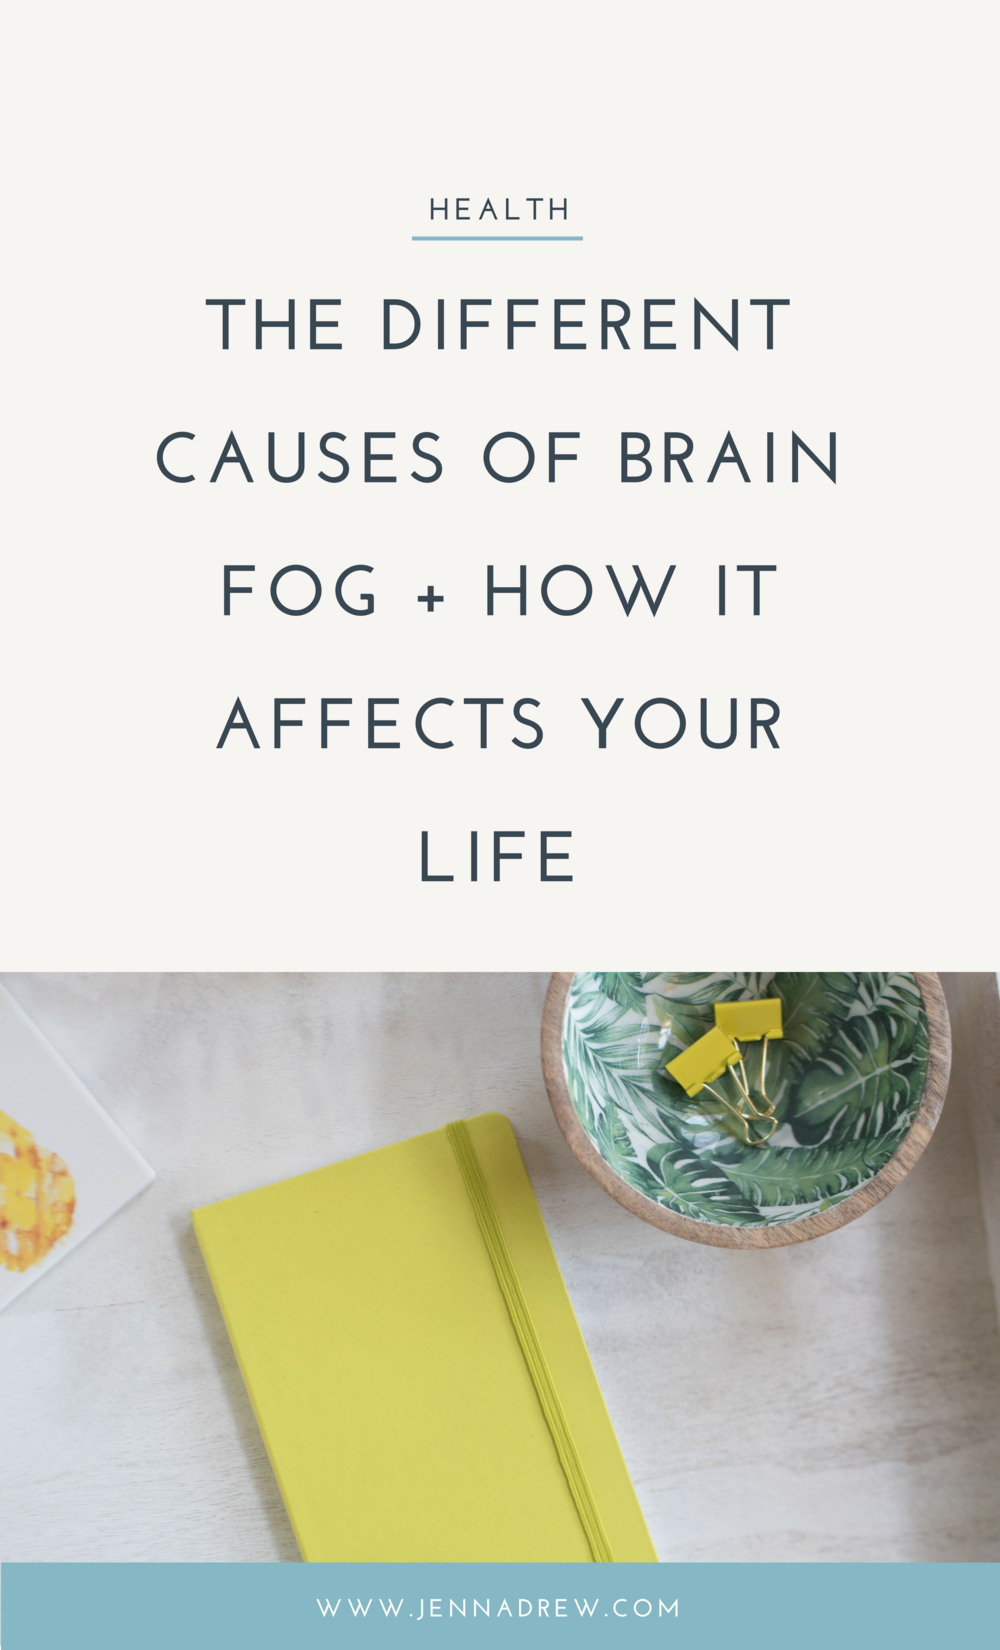 Causes of Brain Fog - Get More Healthy Living Tips at JennaDrew.com